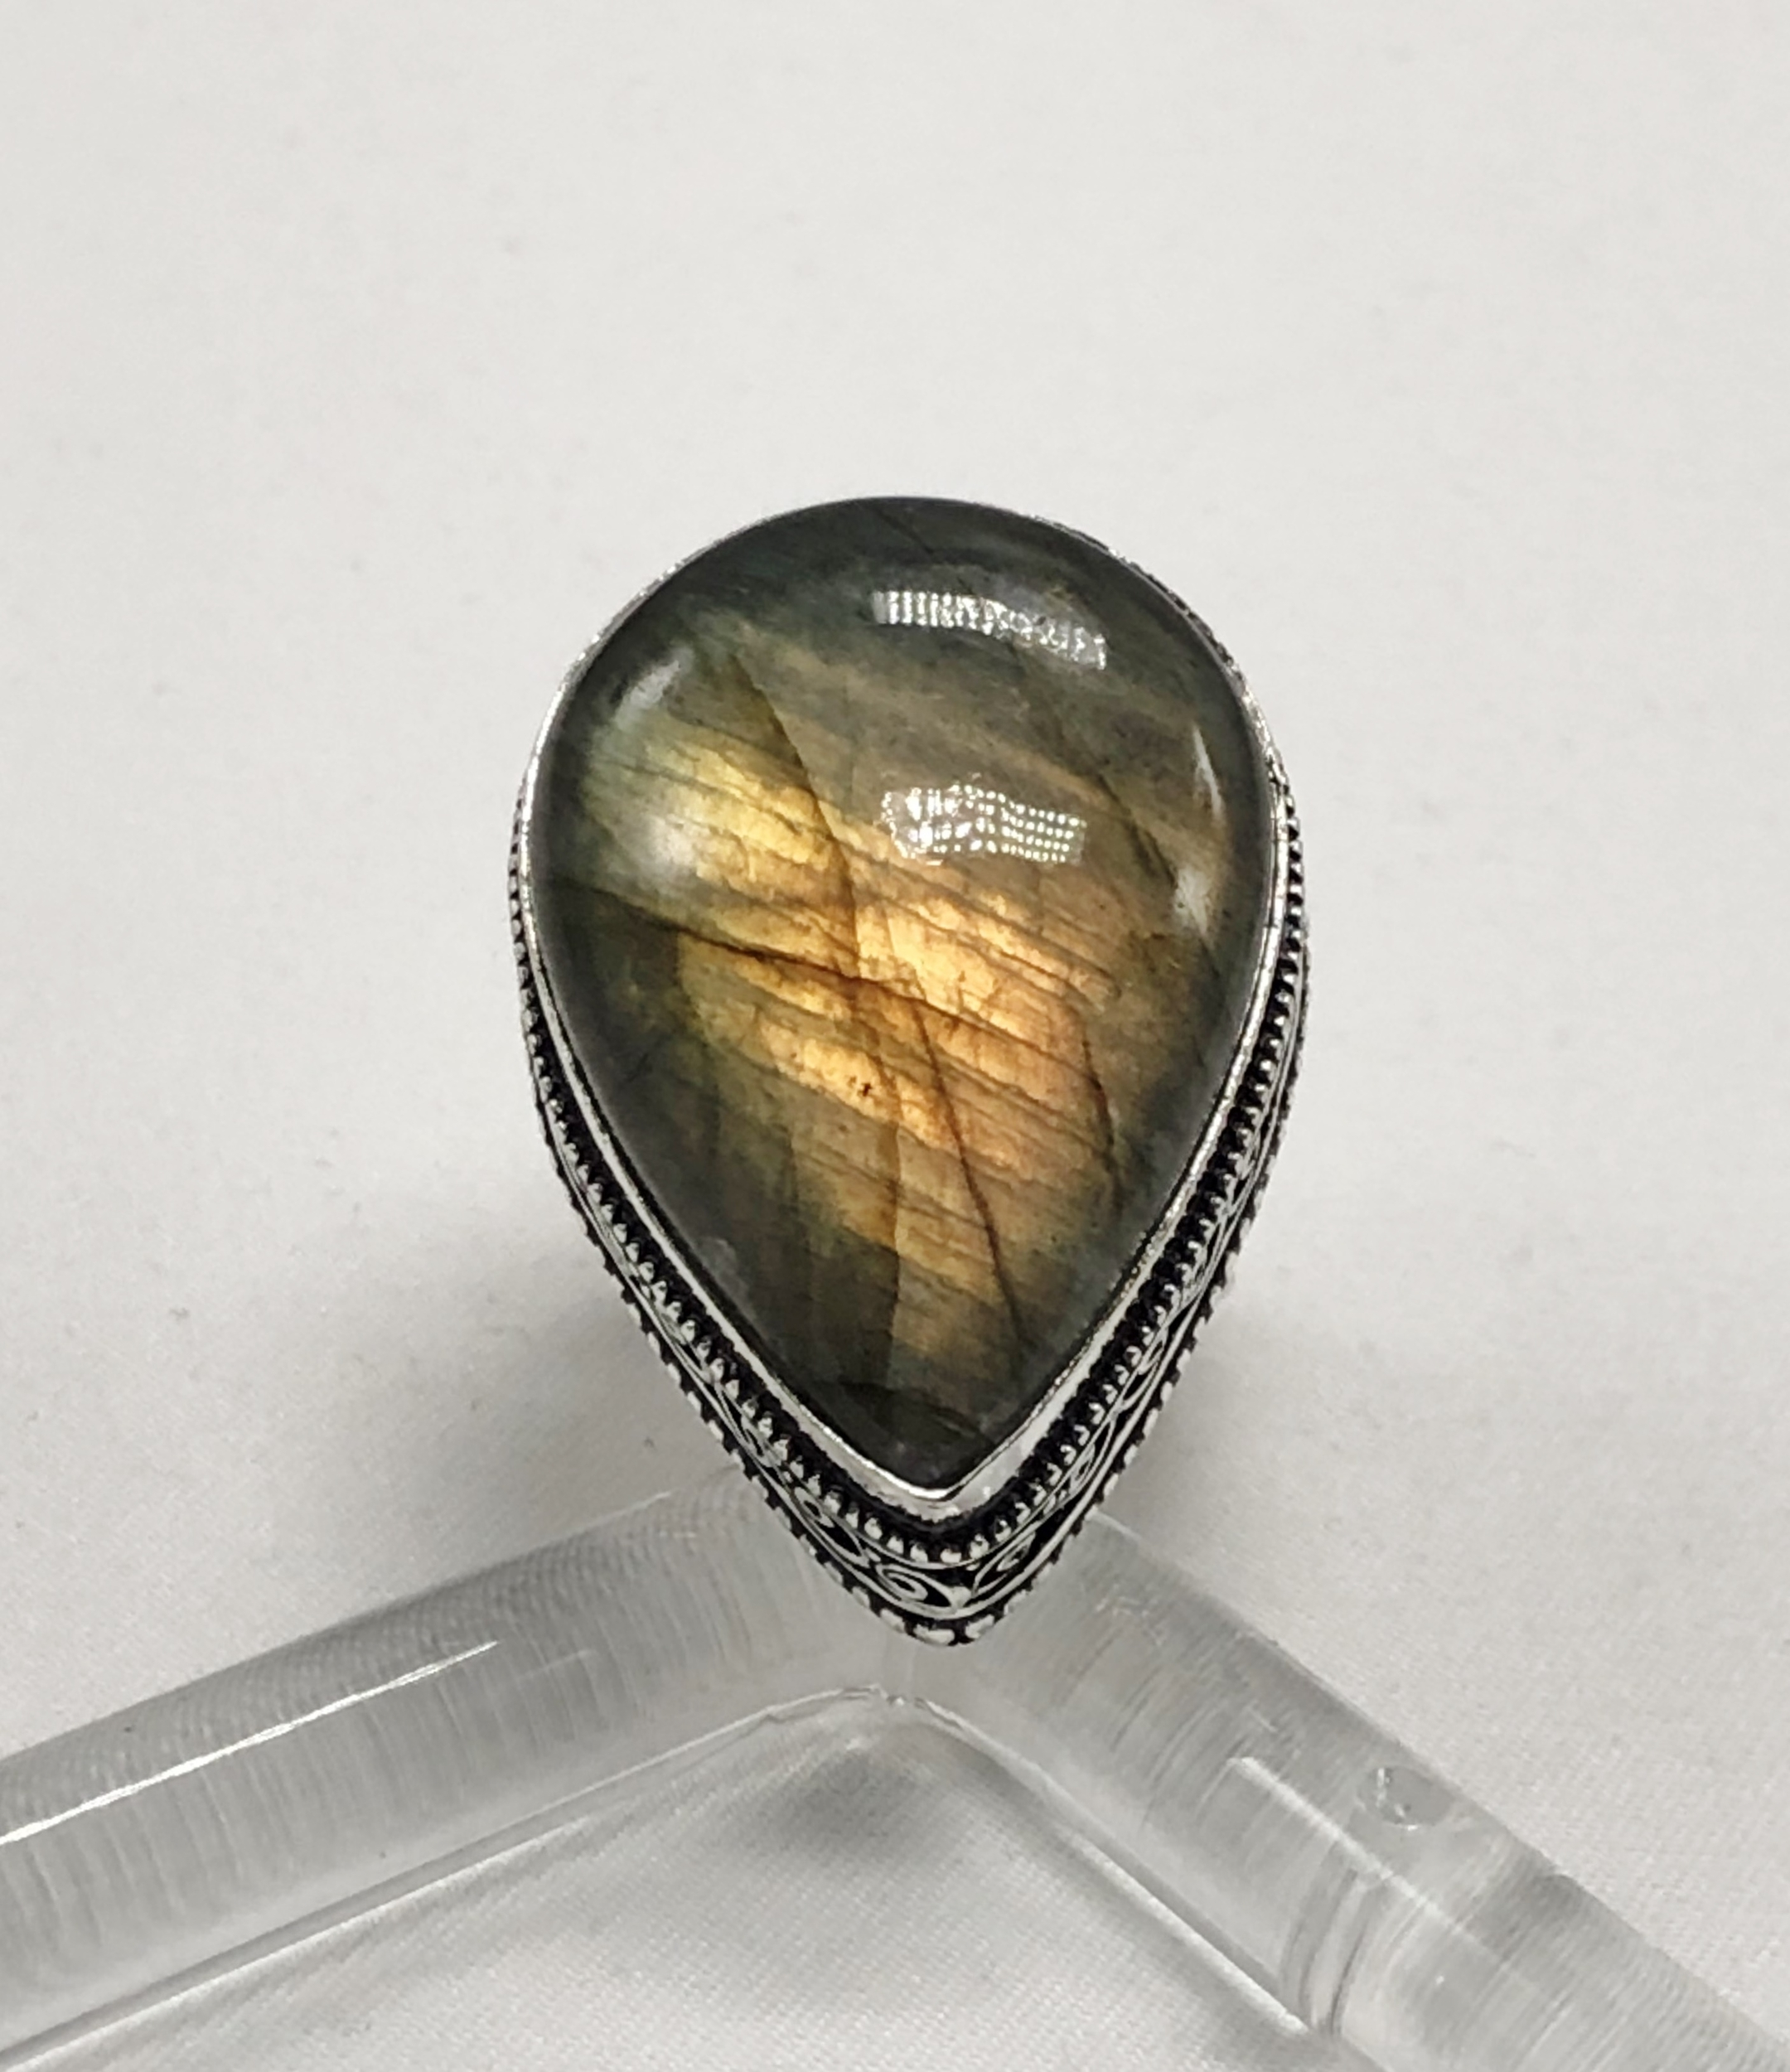 Bague labradorite jaune forme goutte montage antique argent 925 - Angel shop